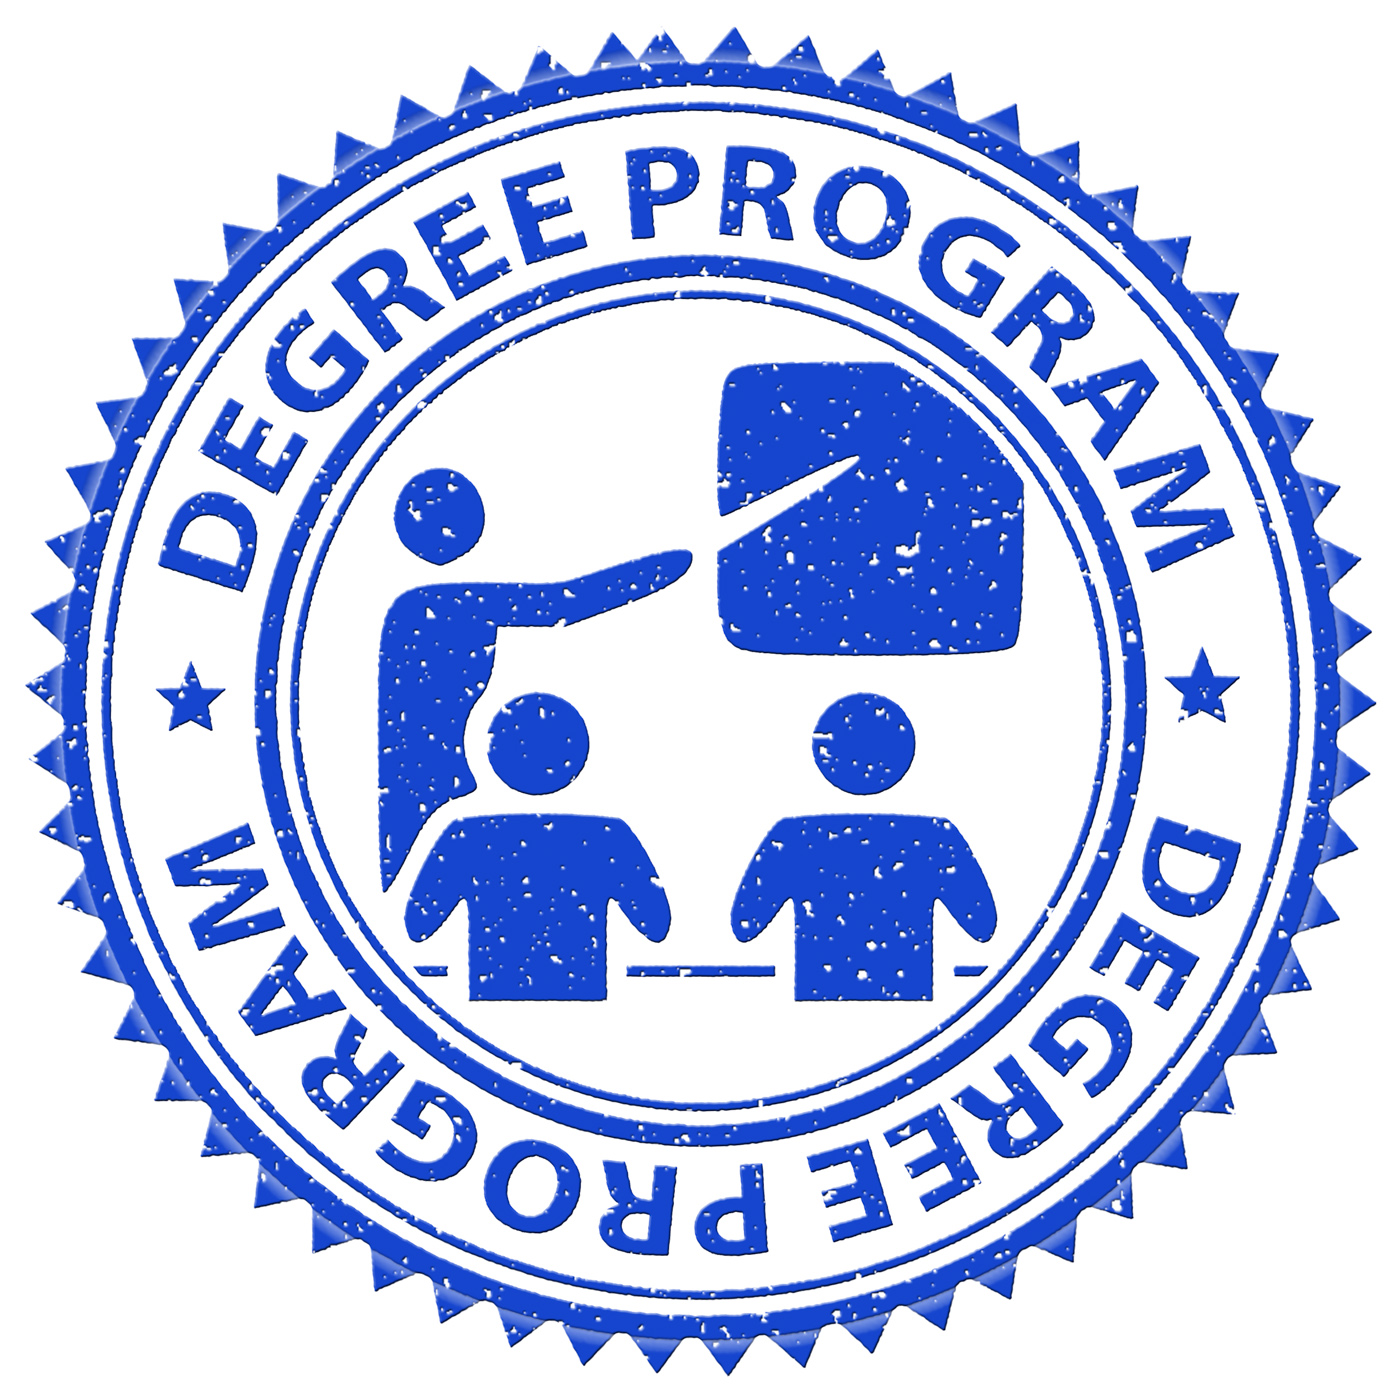 Degree Program Shows Stamps Educated And Education, Associates, Learning, Training, Studying, HQ Photo